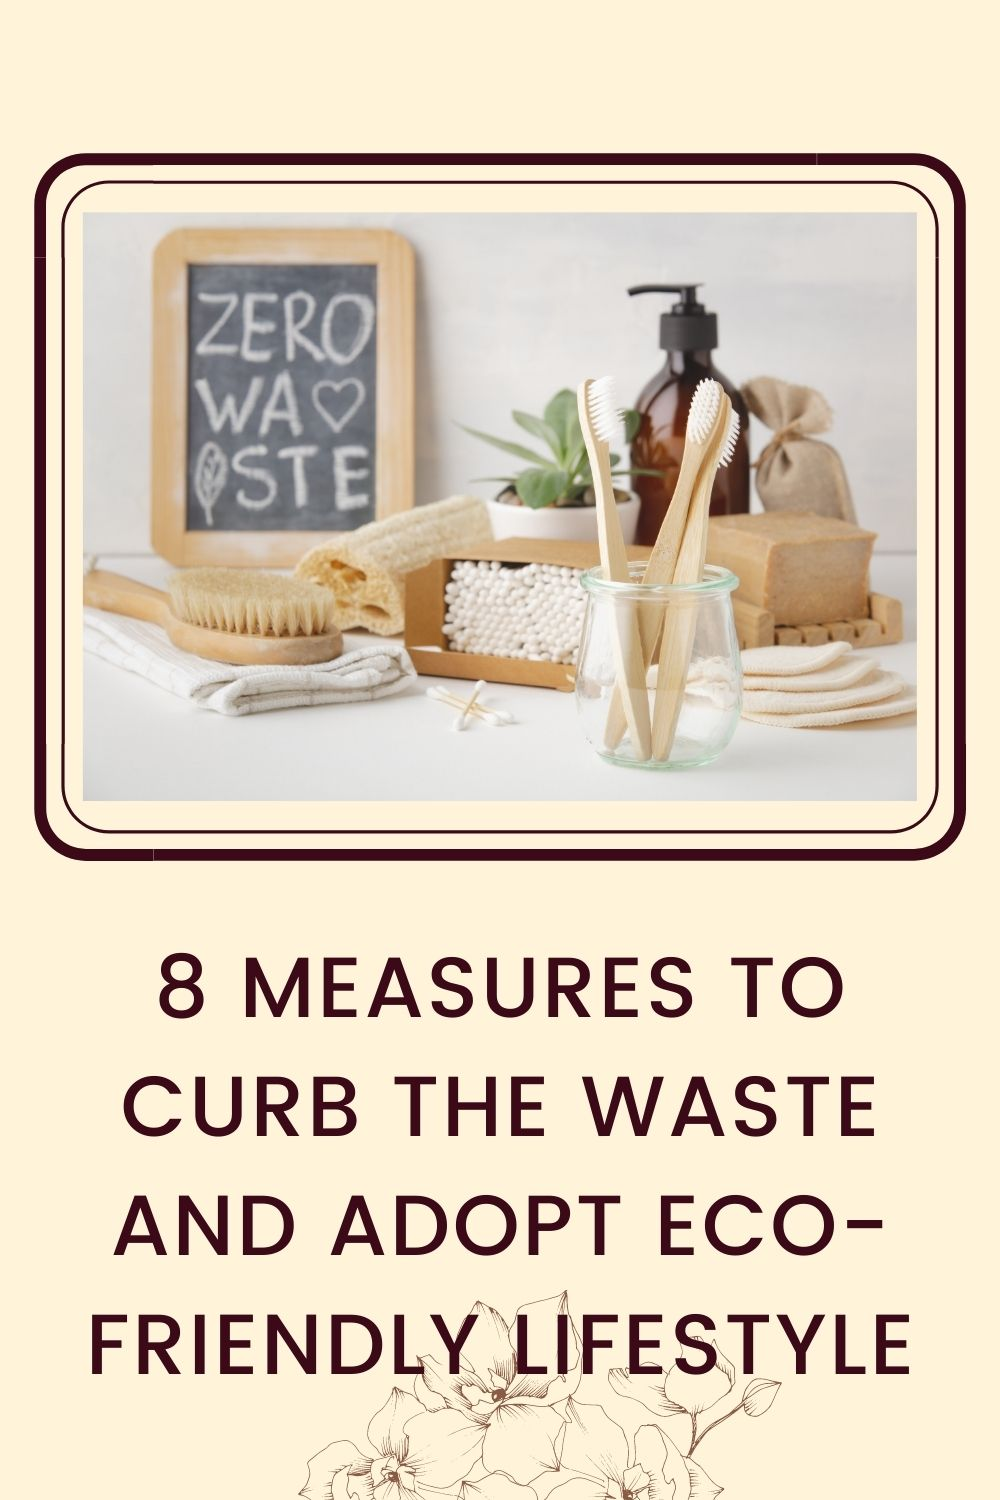 8 measures to curb the waste and adopt eco-friendly lifestyle